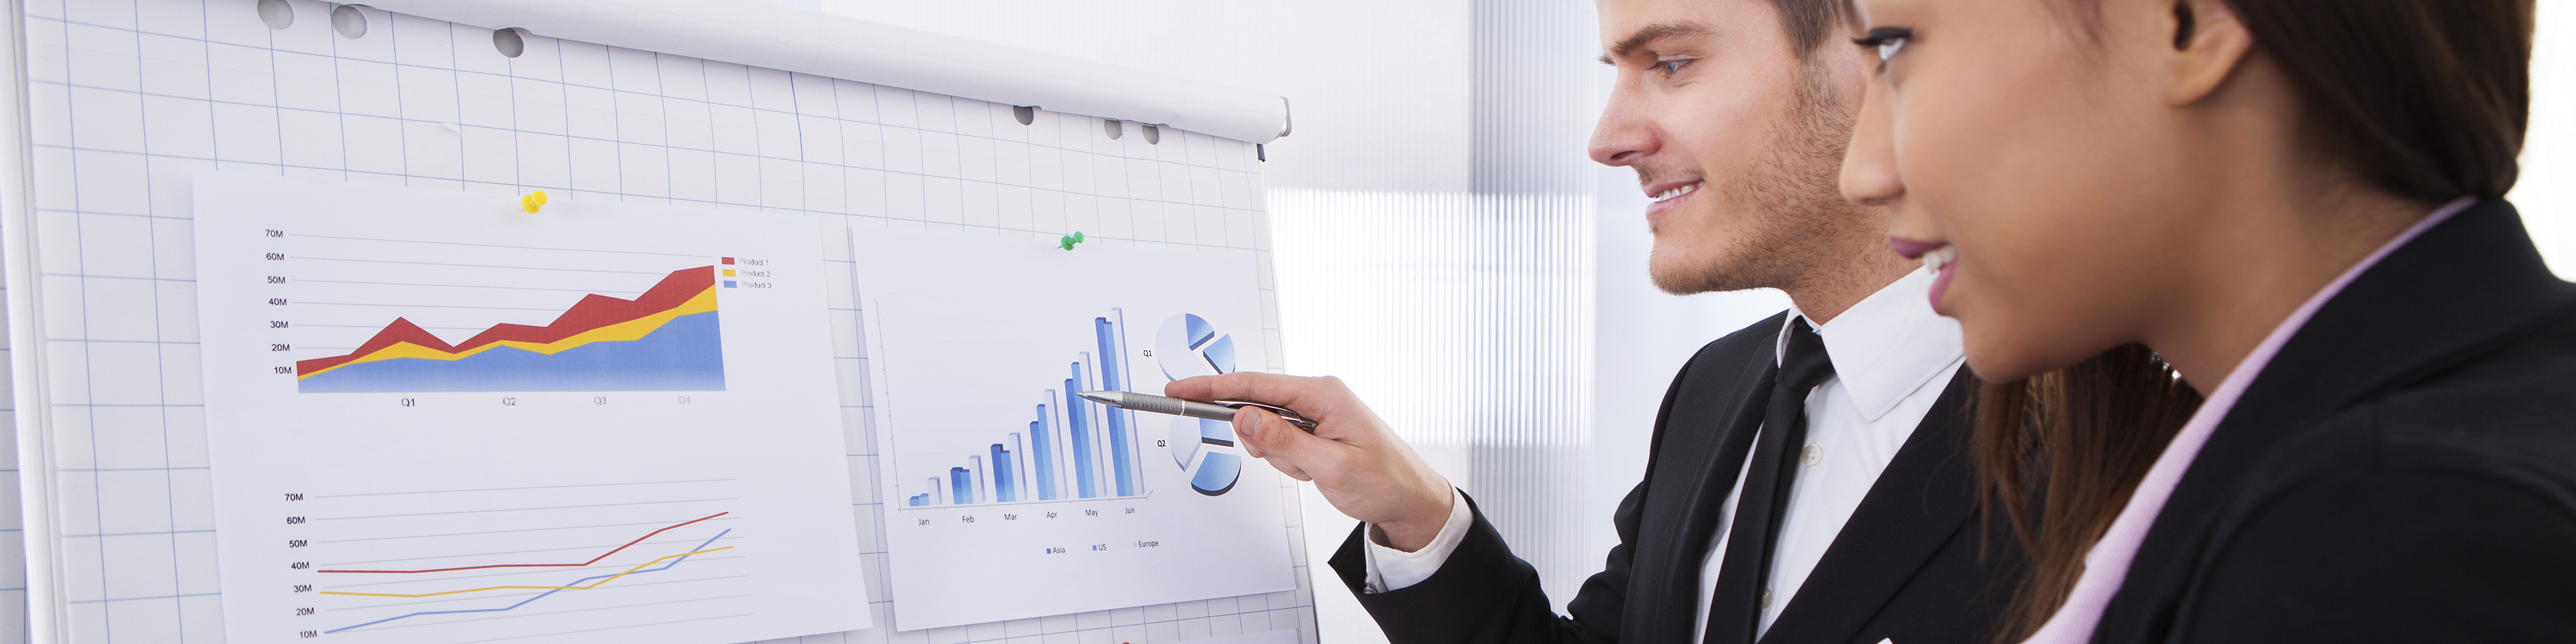 How do you get all your auditors doing analytics?